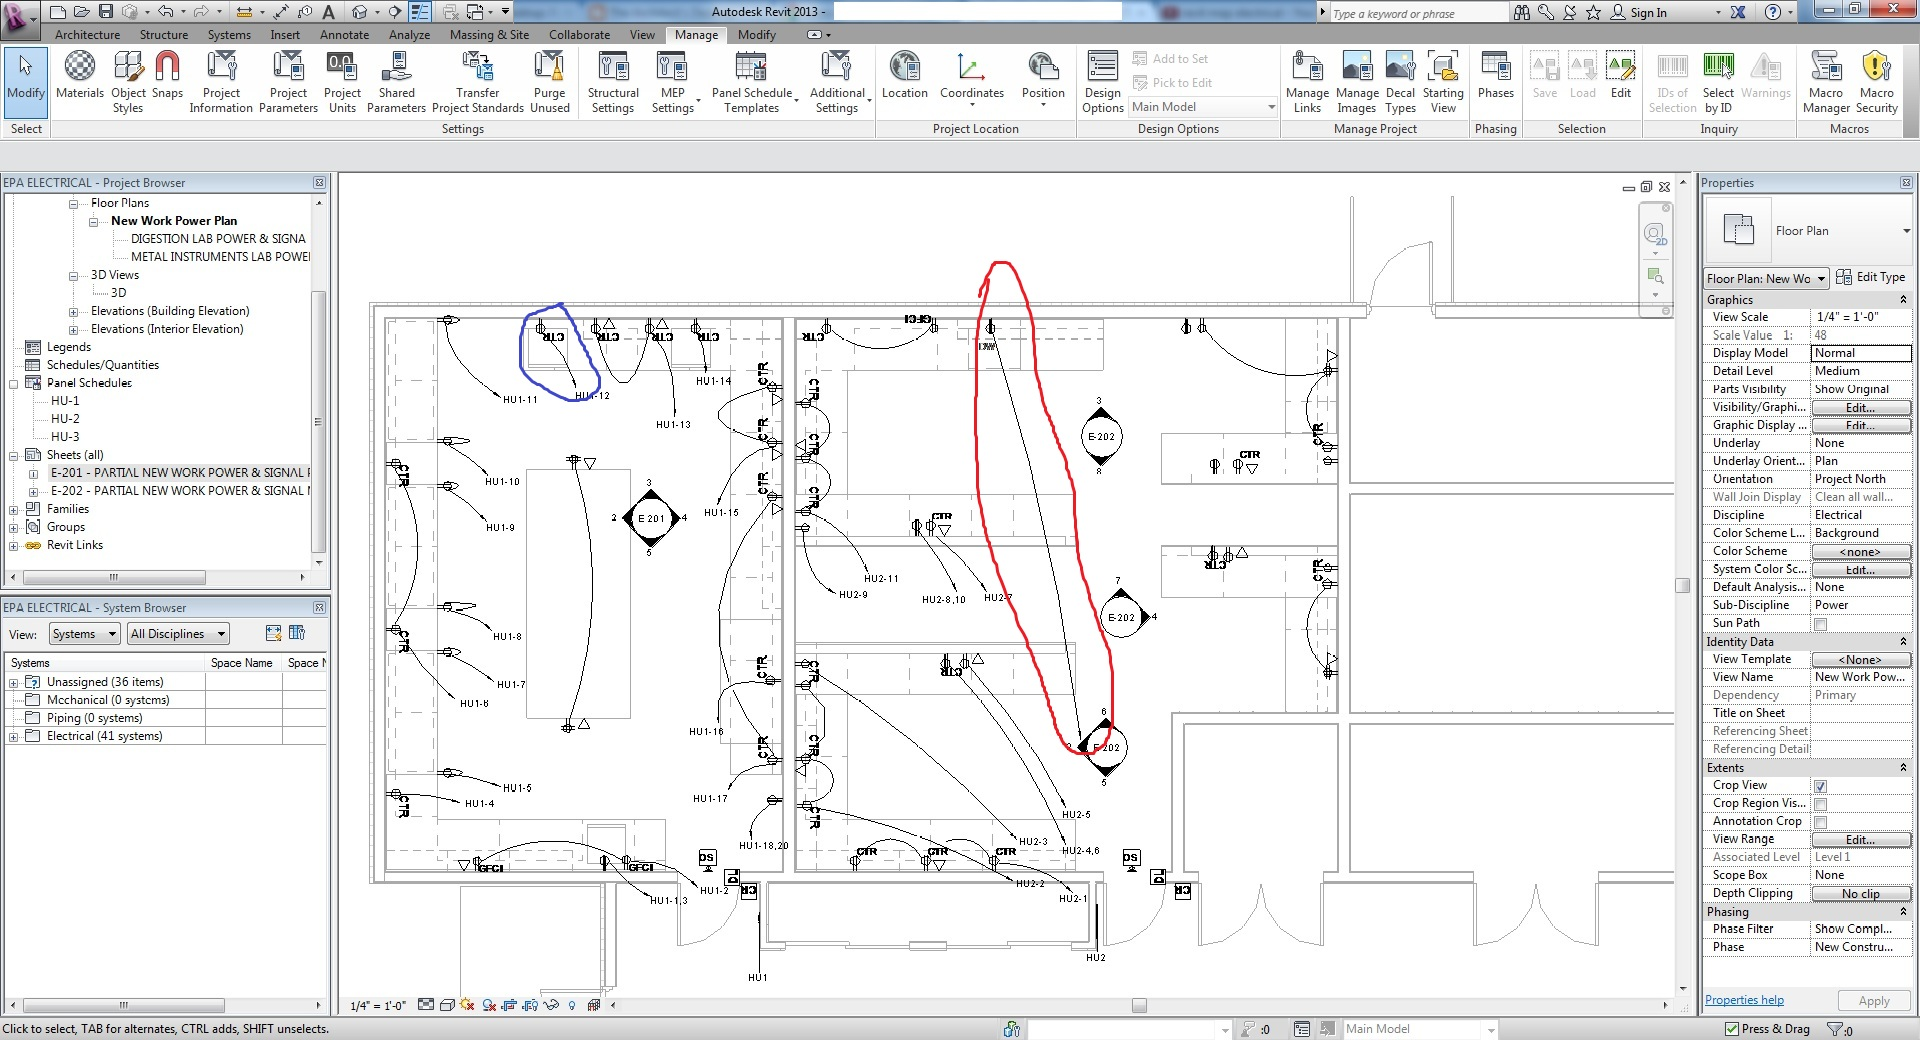 Tracking Gps Installation Wiring Diagram. Diagrams. Auto